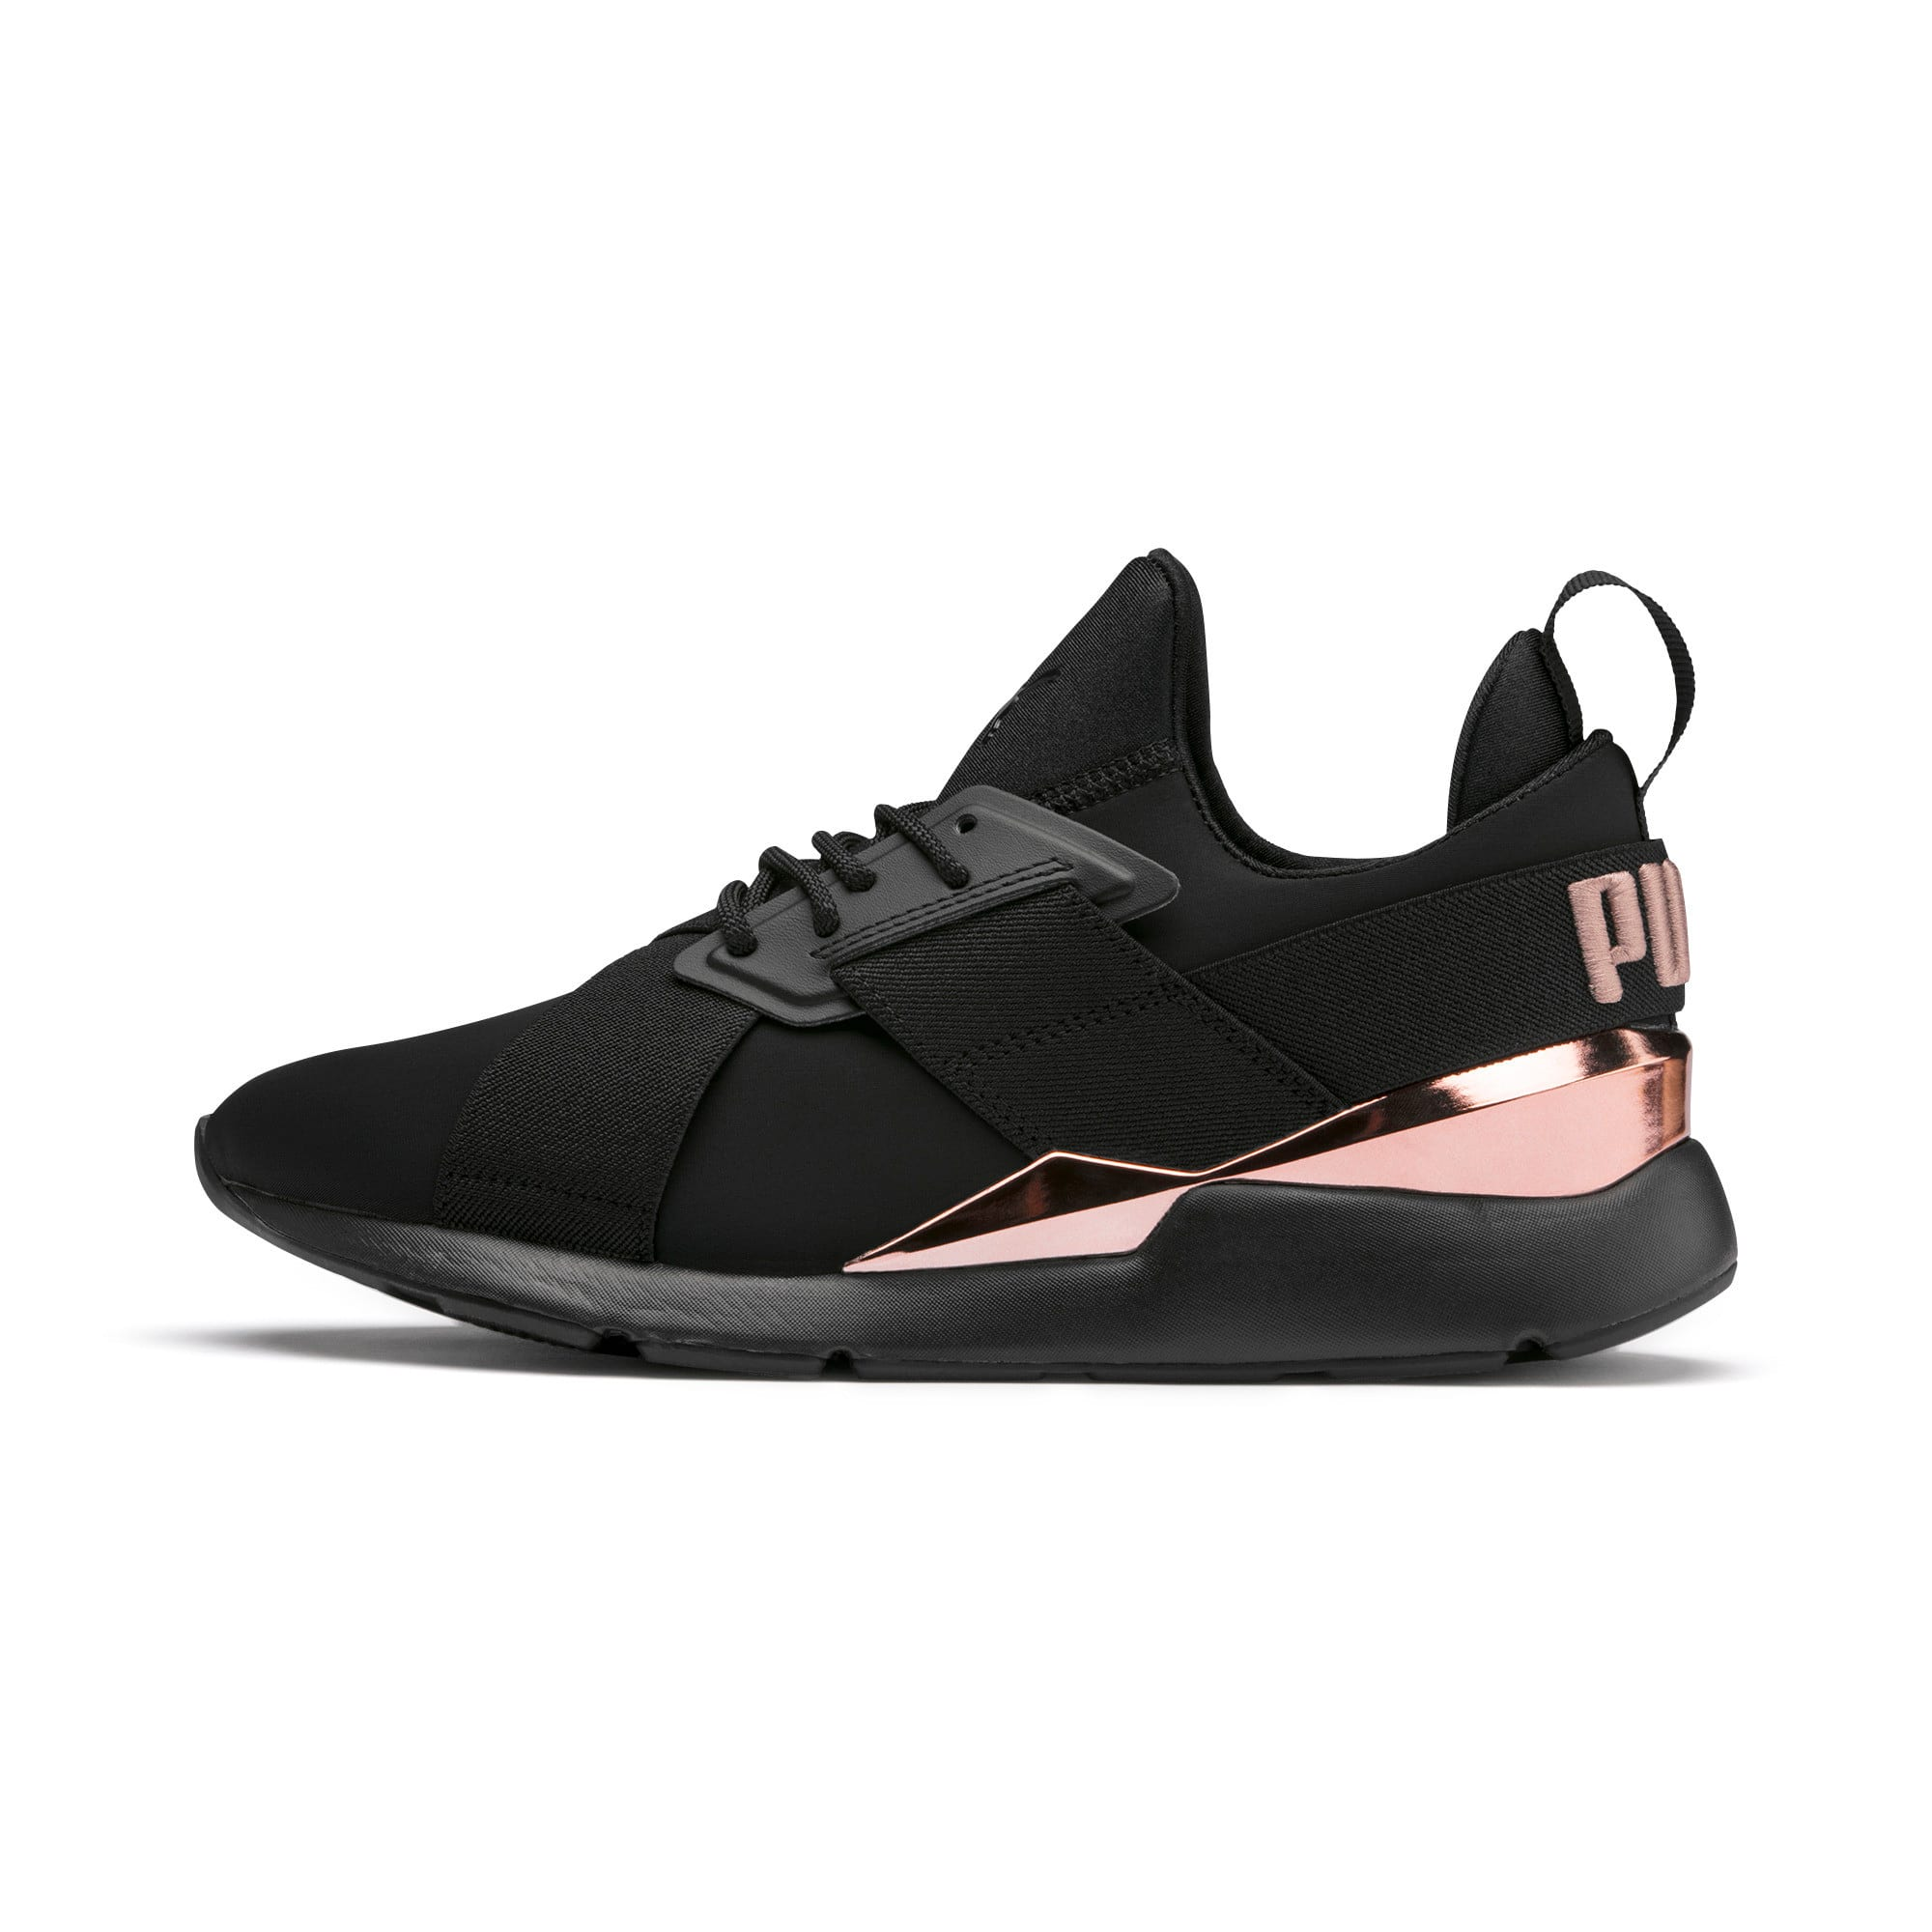 en soldes 2ad1b a32b6 Muse Metal Women's Sneakers